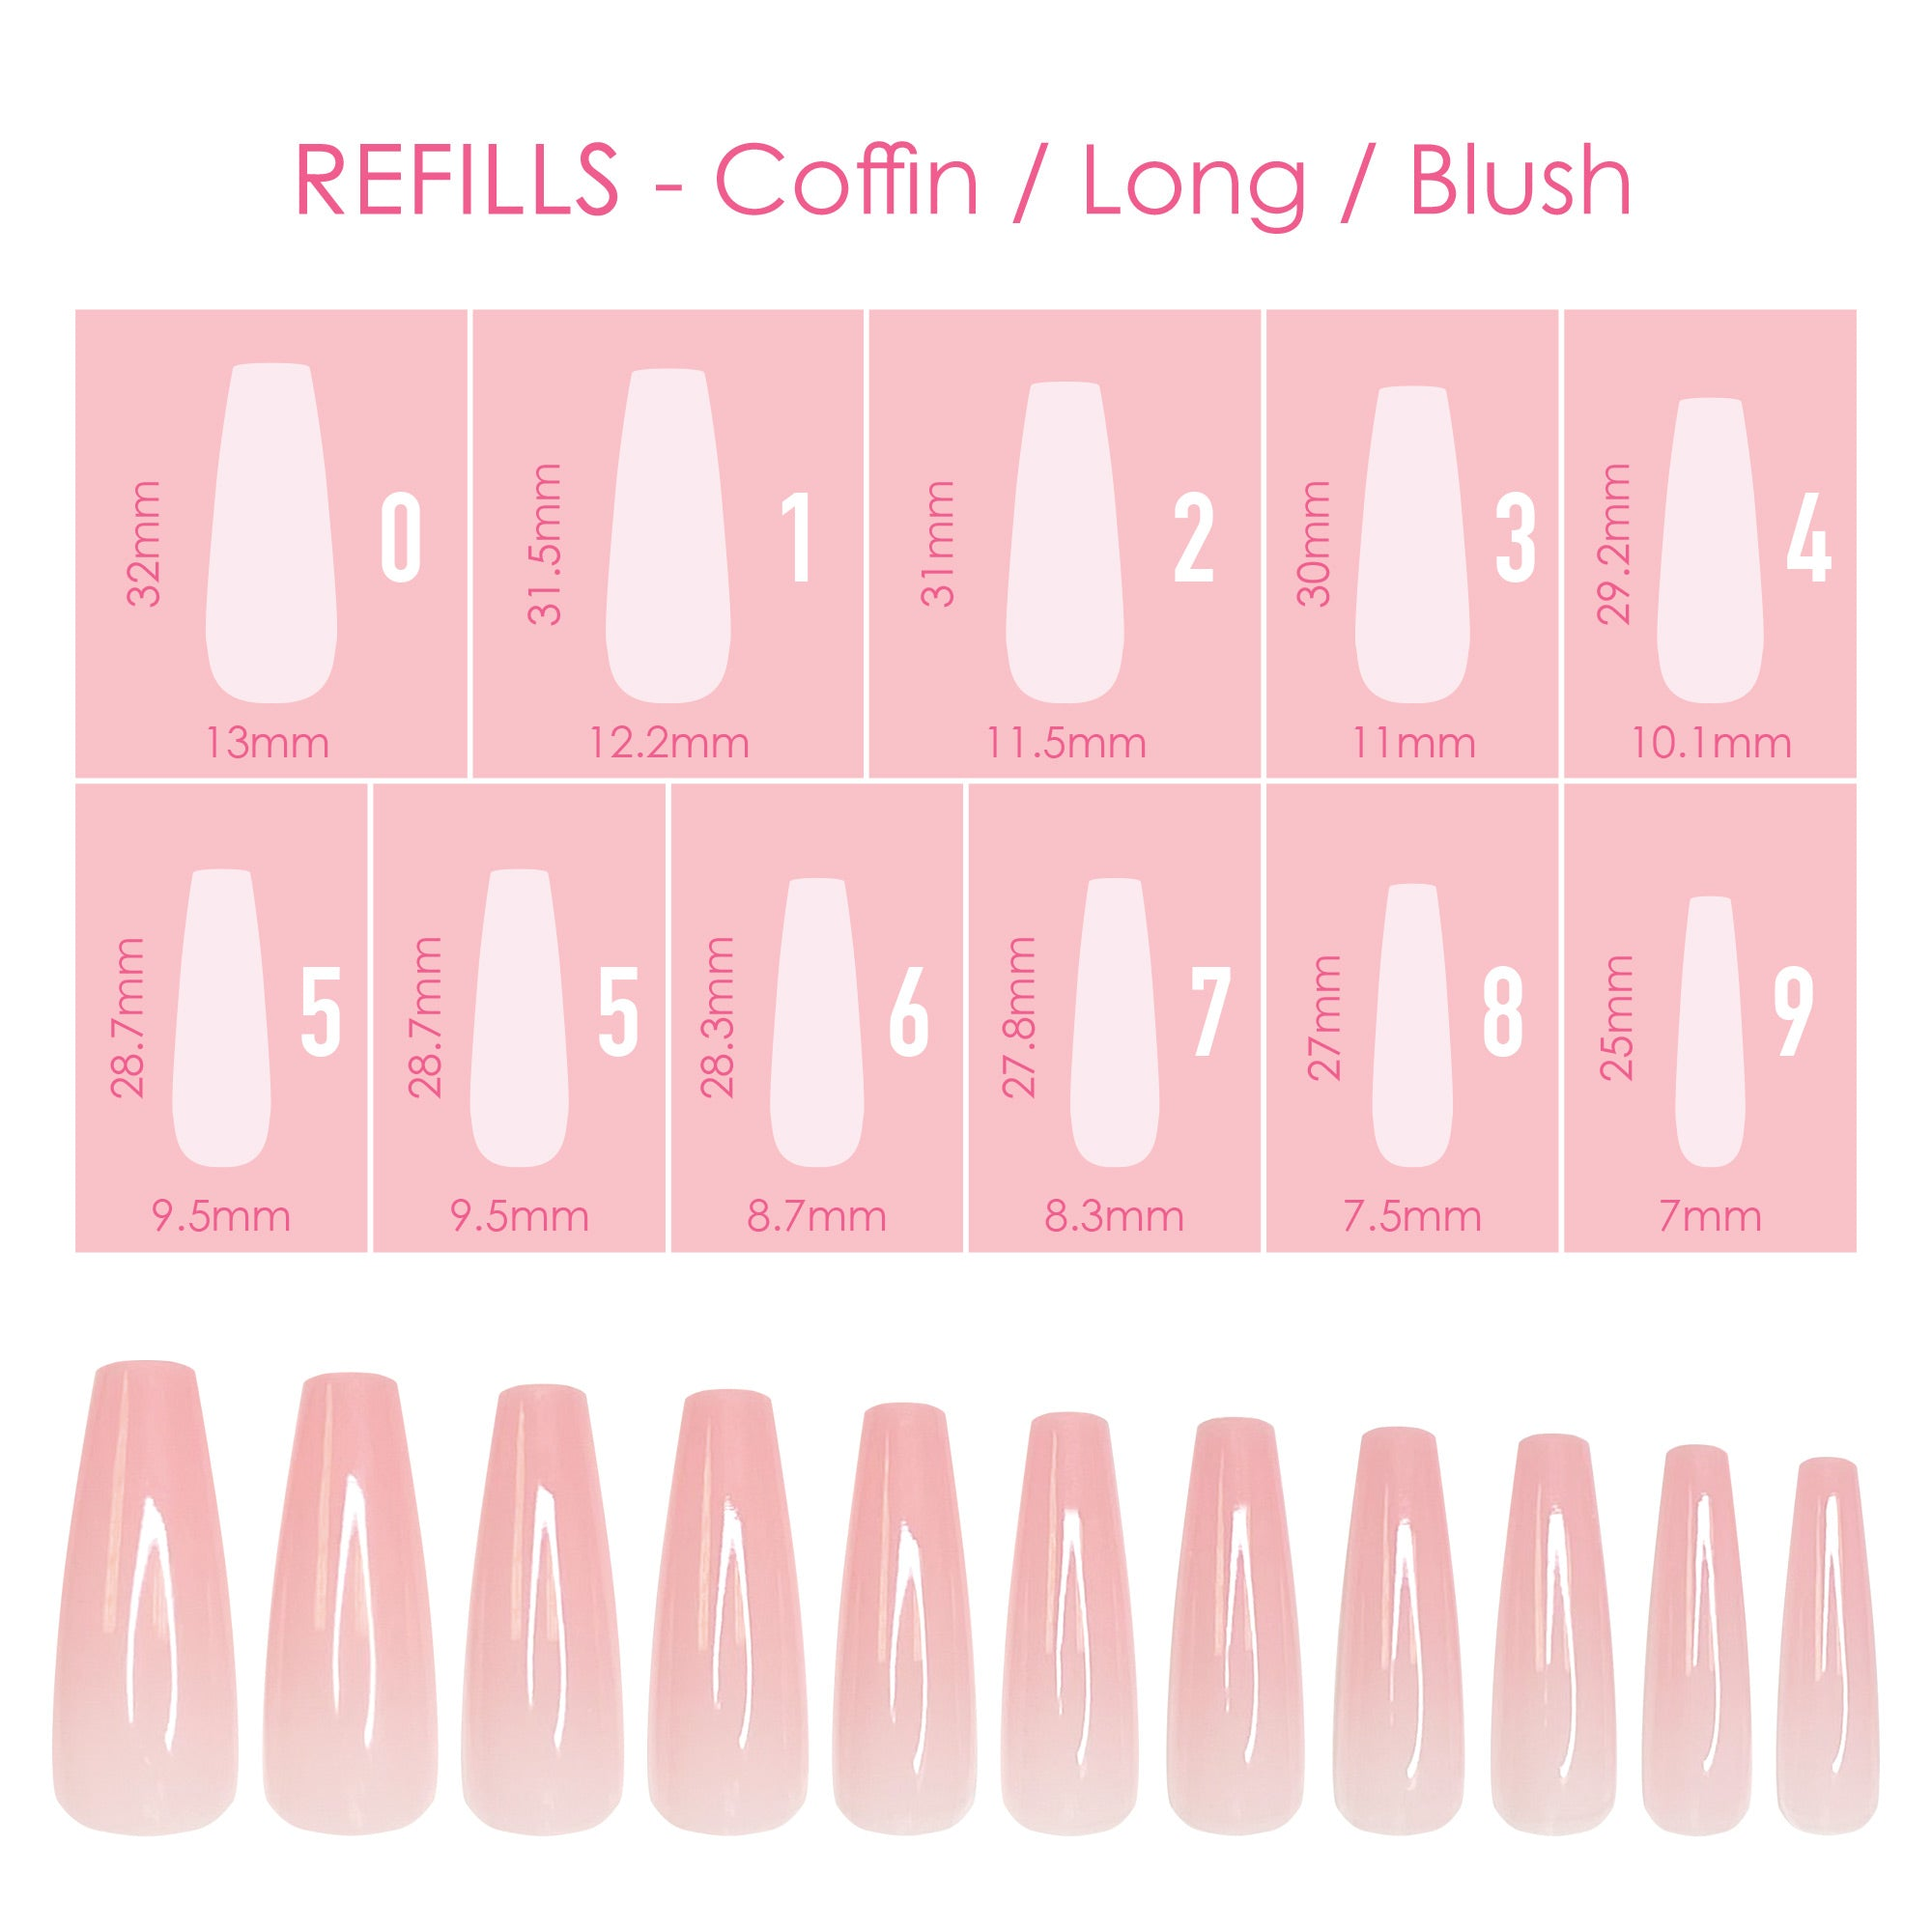 Charme Gel Extension Tips Refill / Coffin / Long / Blush